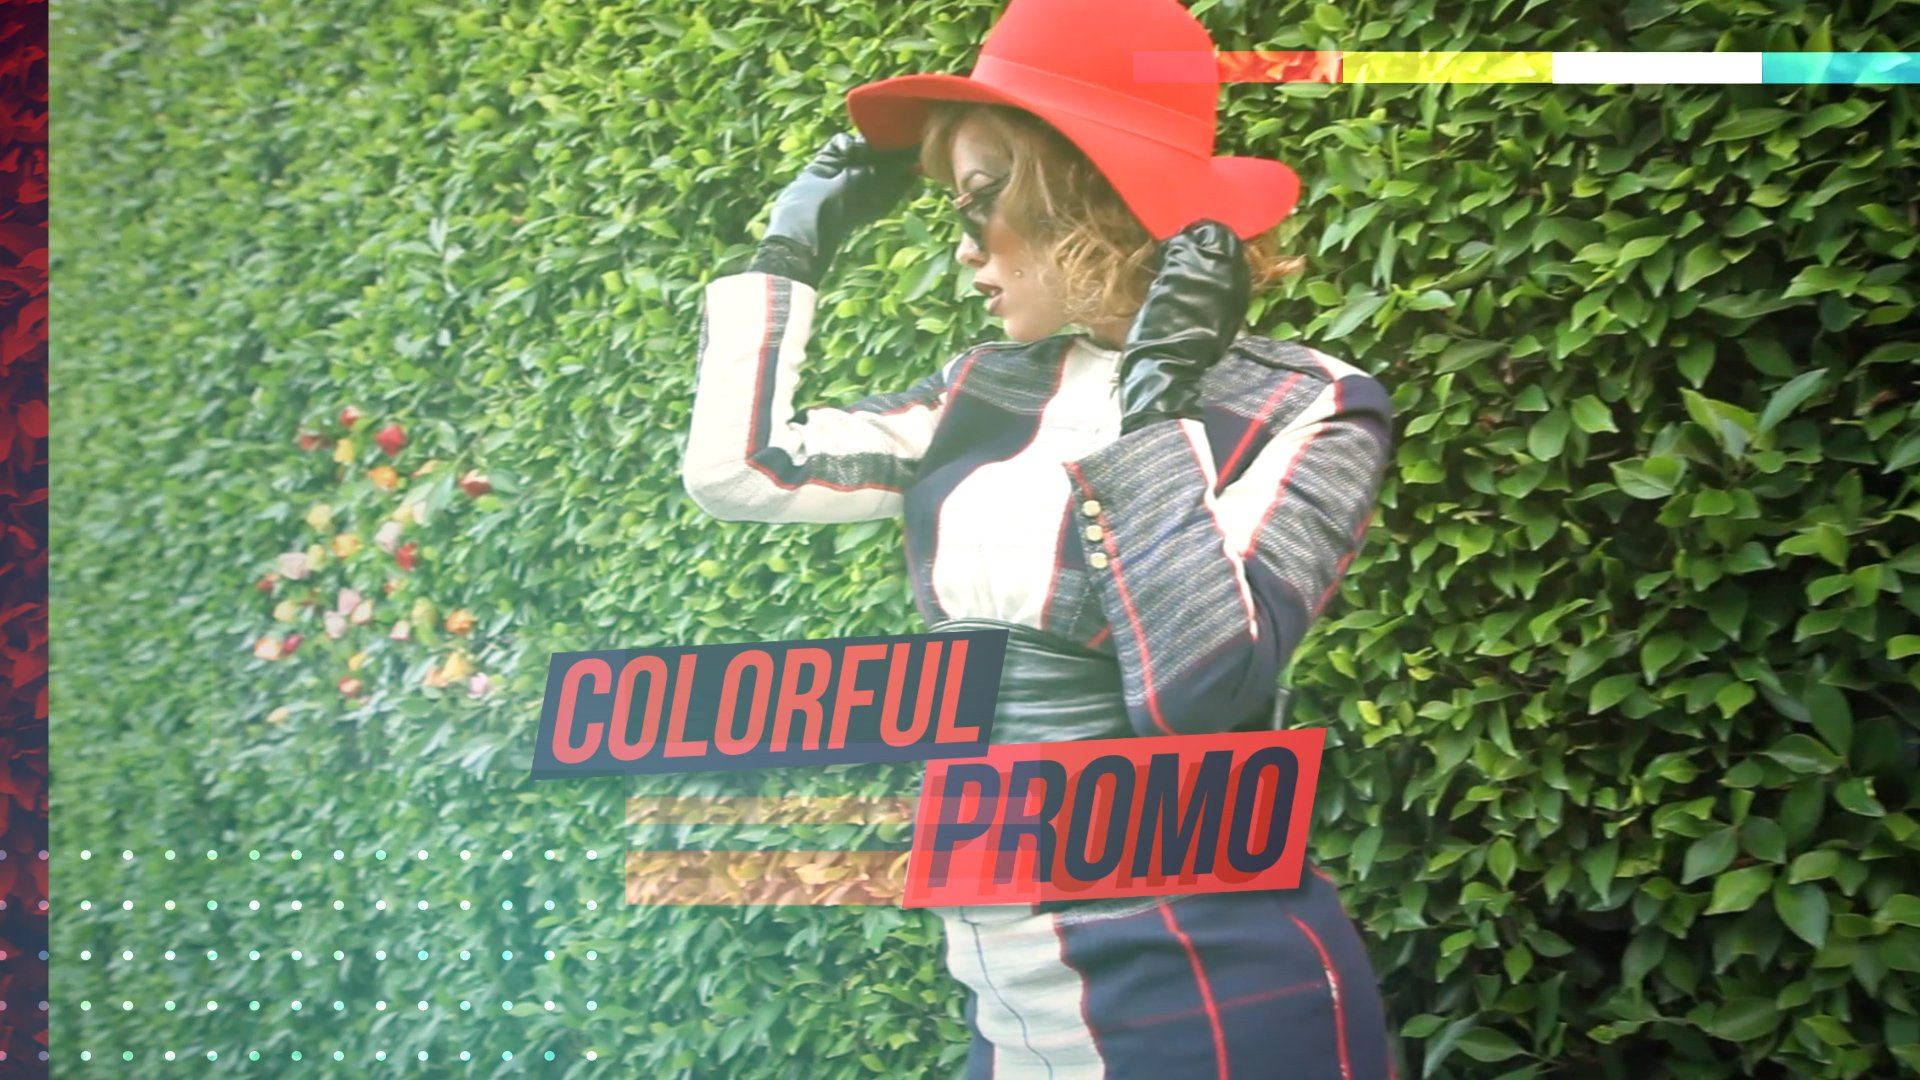 colorful promo glitch template after effects